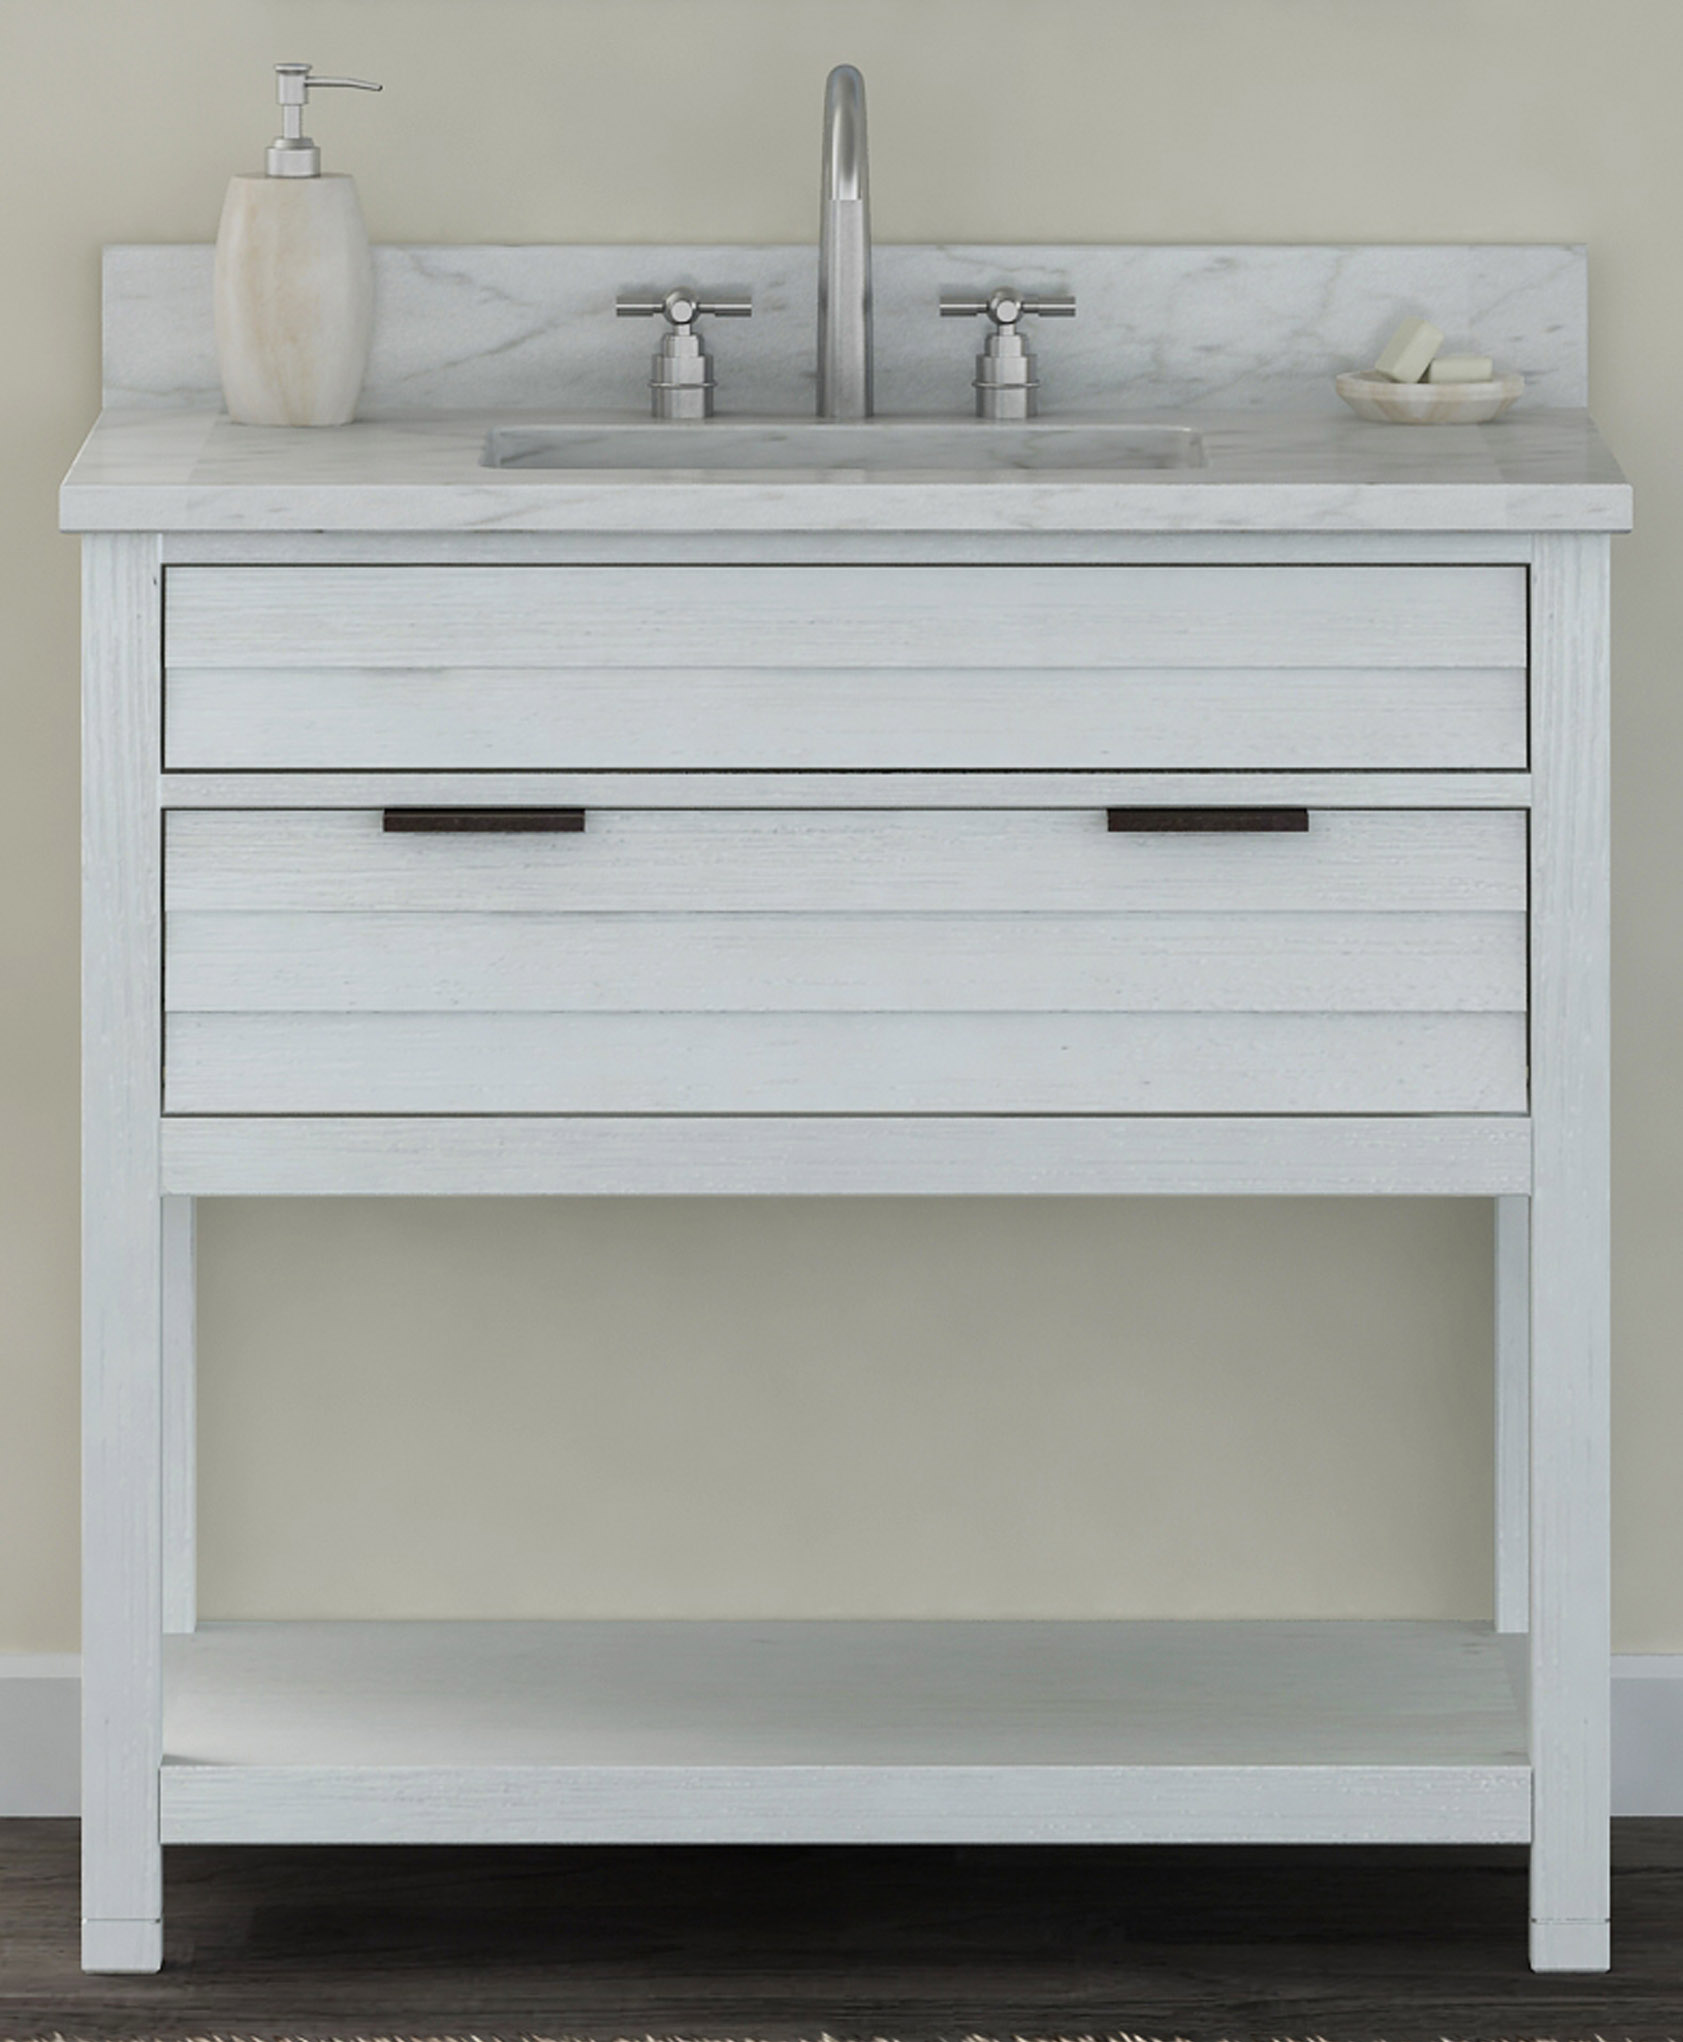 "36"" Bathroom Vanity Base, White-Wash Finish with Countertop Options"